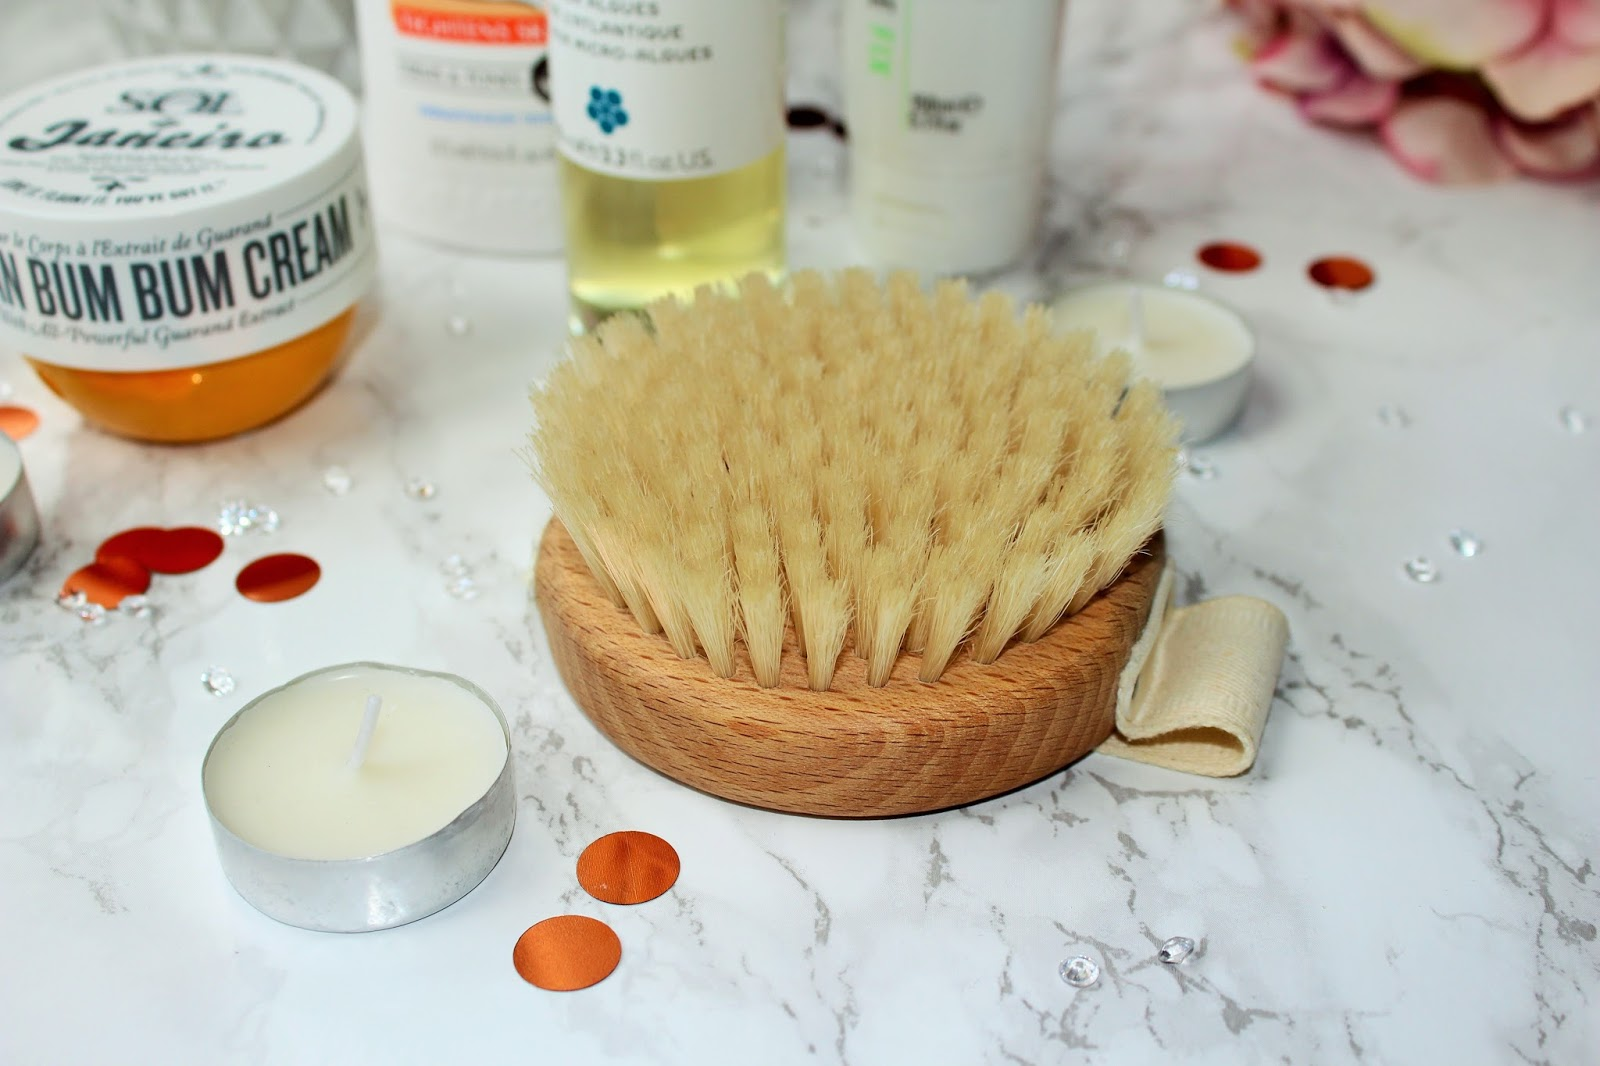 My Favourite Body Firming Products - 2 - Dry Body Brush